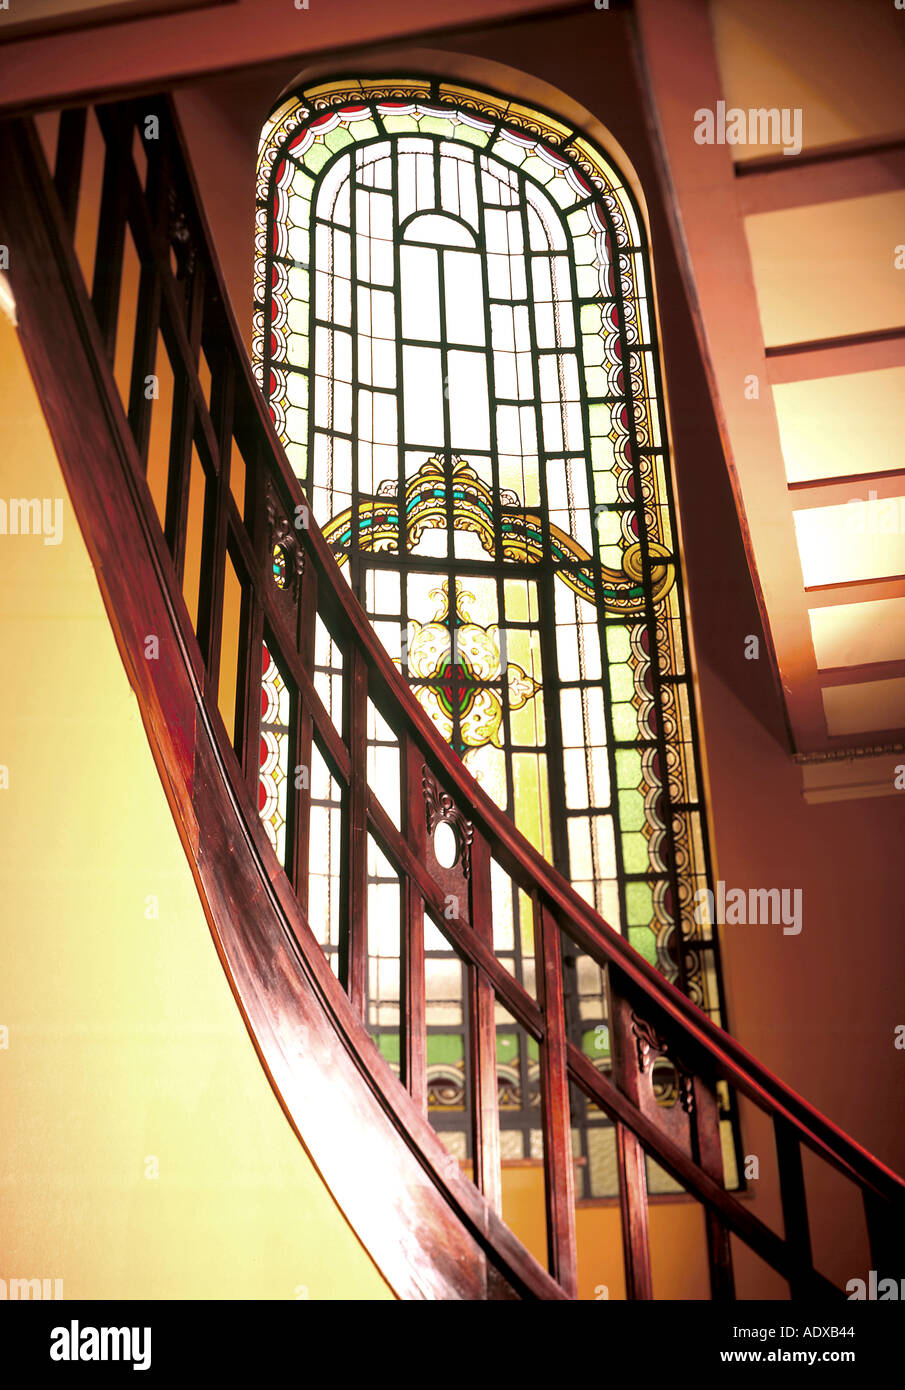 Glass Stair Railing Decoration Concept Concepts stairs stairway staircase wooden railing bannister handrail  stained glass decoration high ceiling architecture